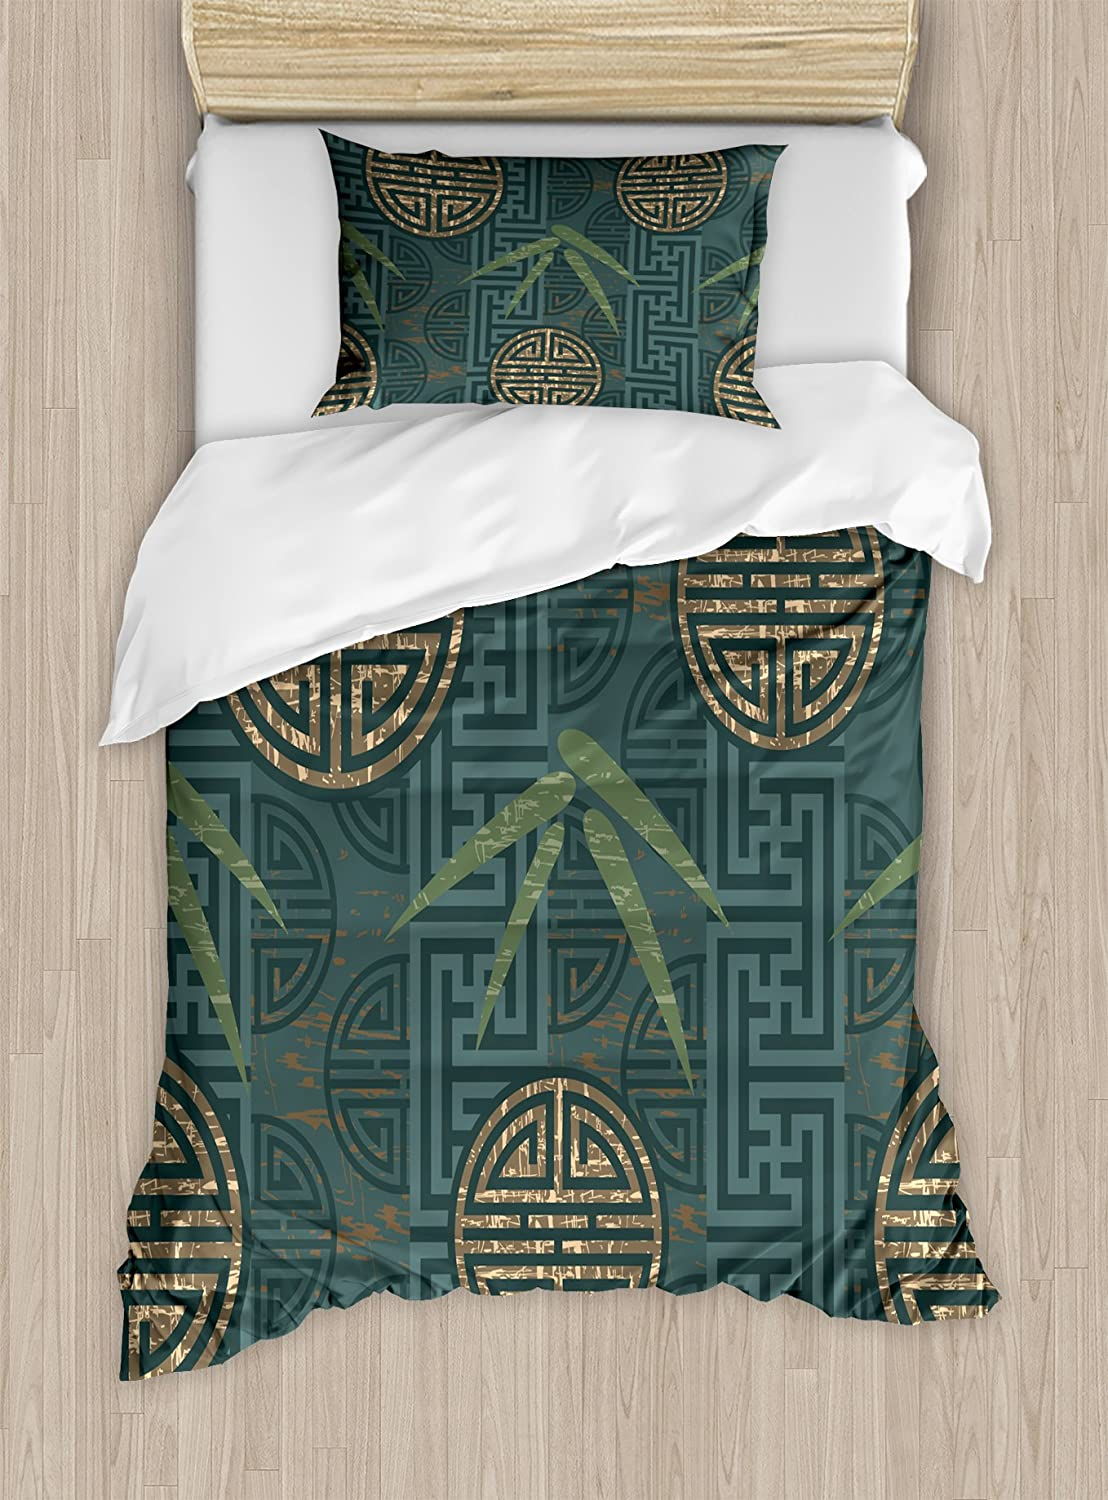 Ambesonne Bamboo Duvet Cover Set, Style Composition with Oriental Motifs Leaves Eastern Elements, Decorative 2 Piece Bedding Set with 1 Pillow Sham, Twin Size, Ivory Teal